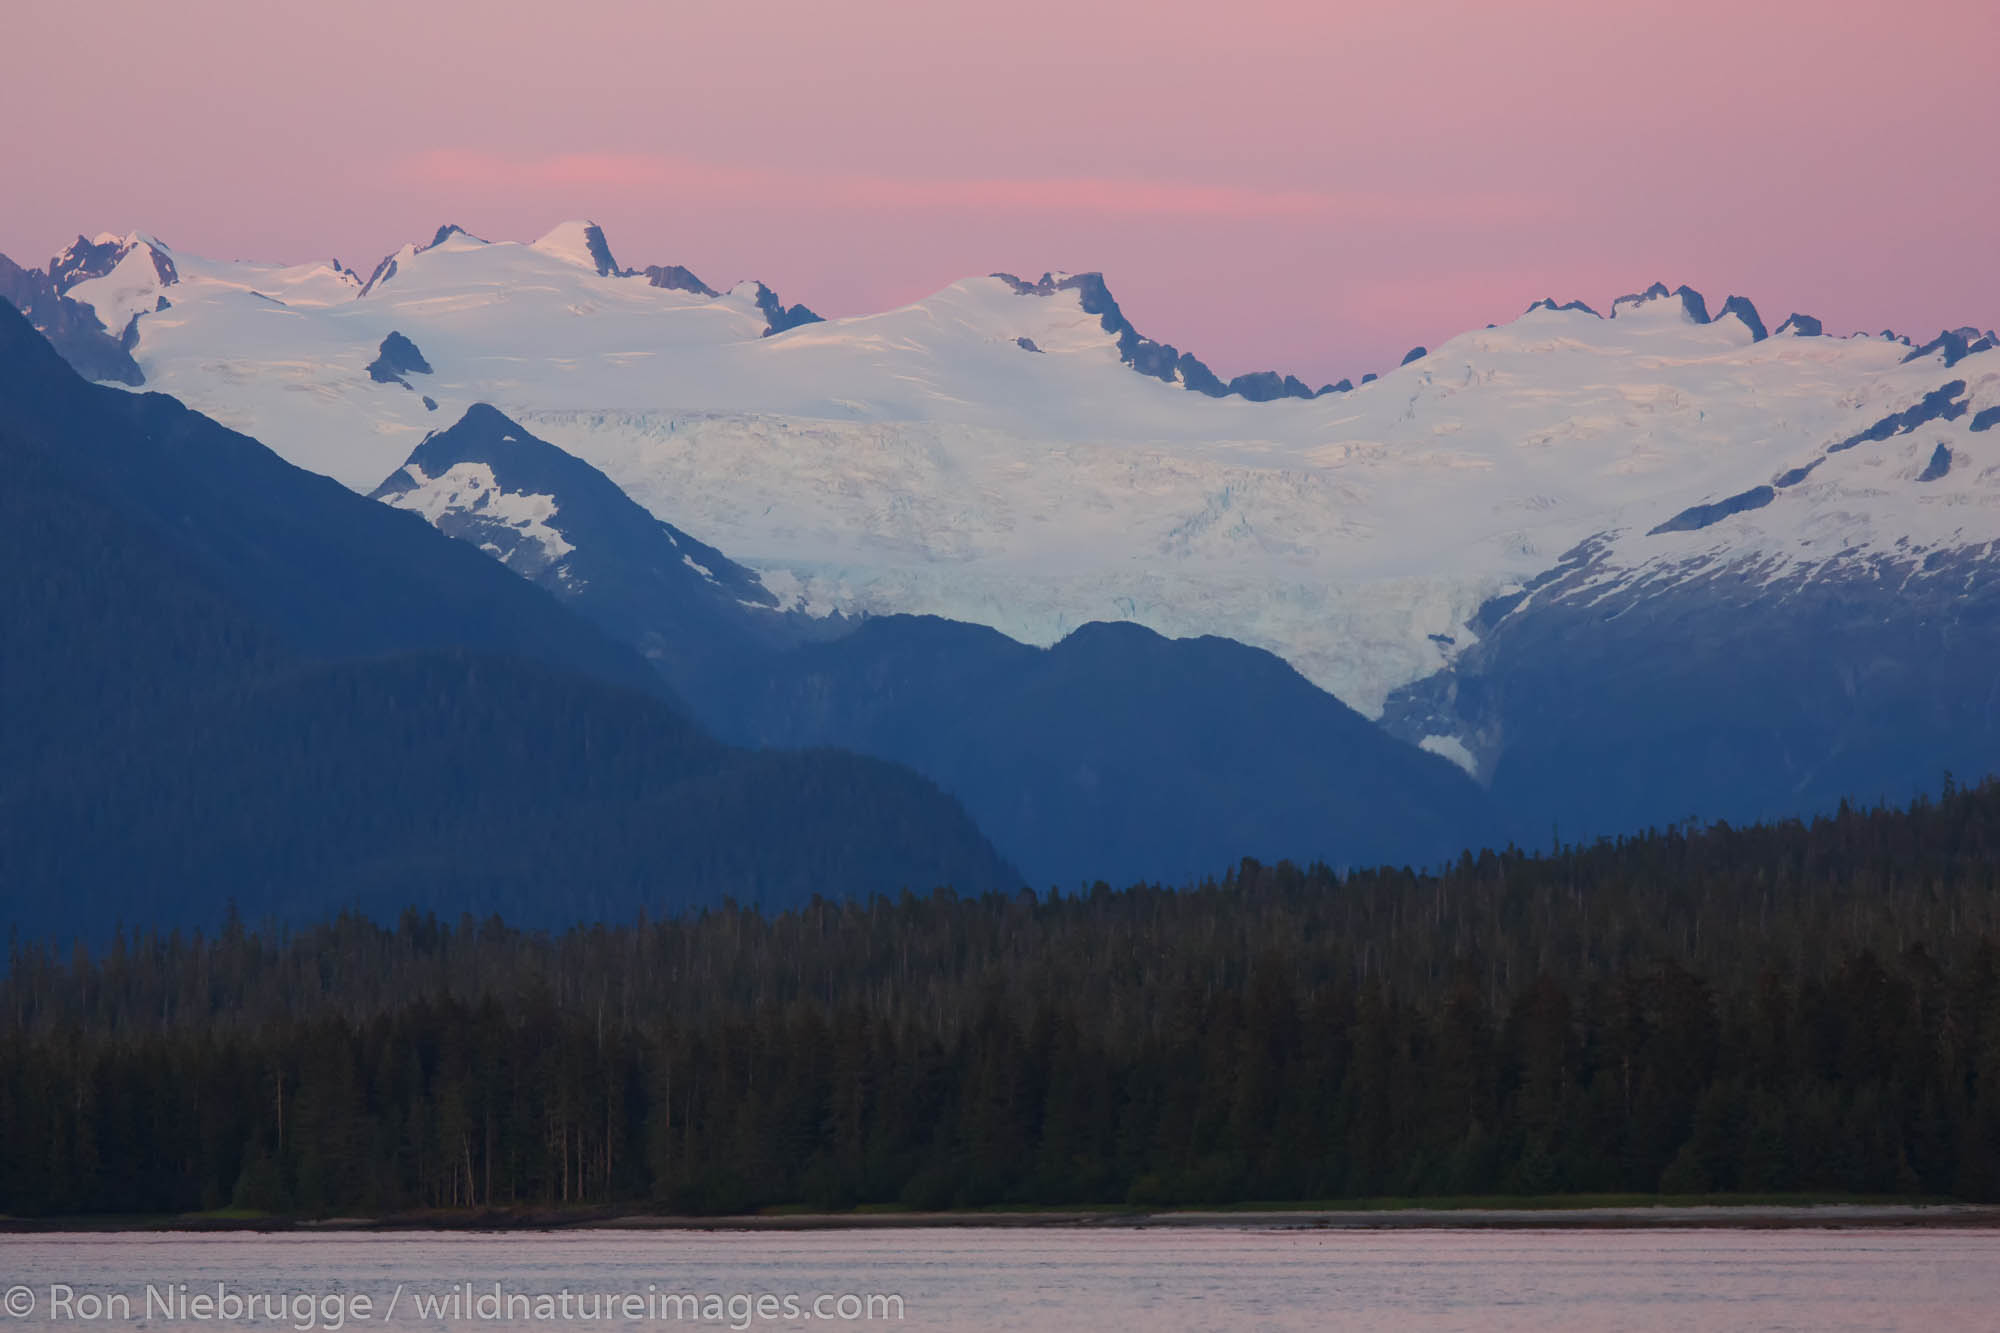 Sunset on Frederick Sound, Tongass National Forest, Alaska.